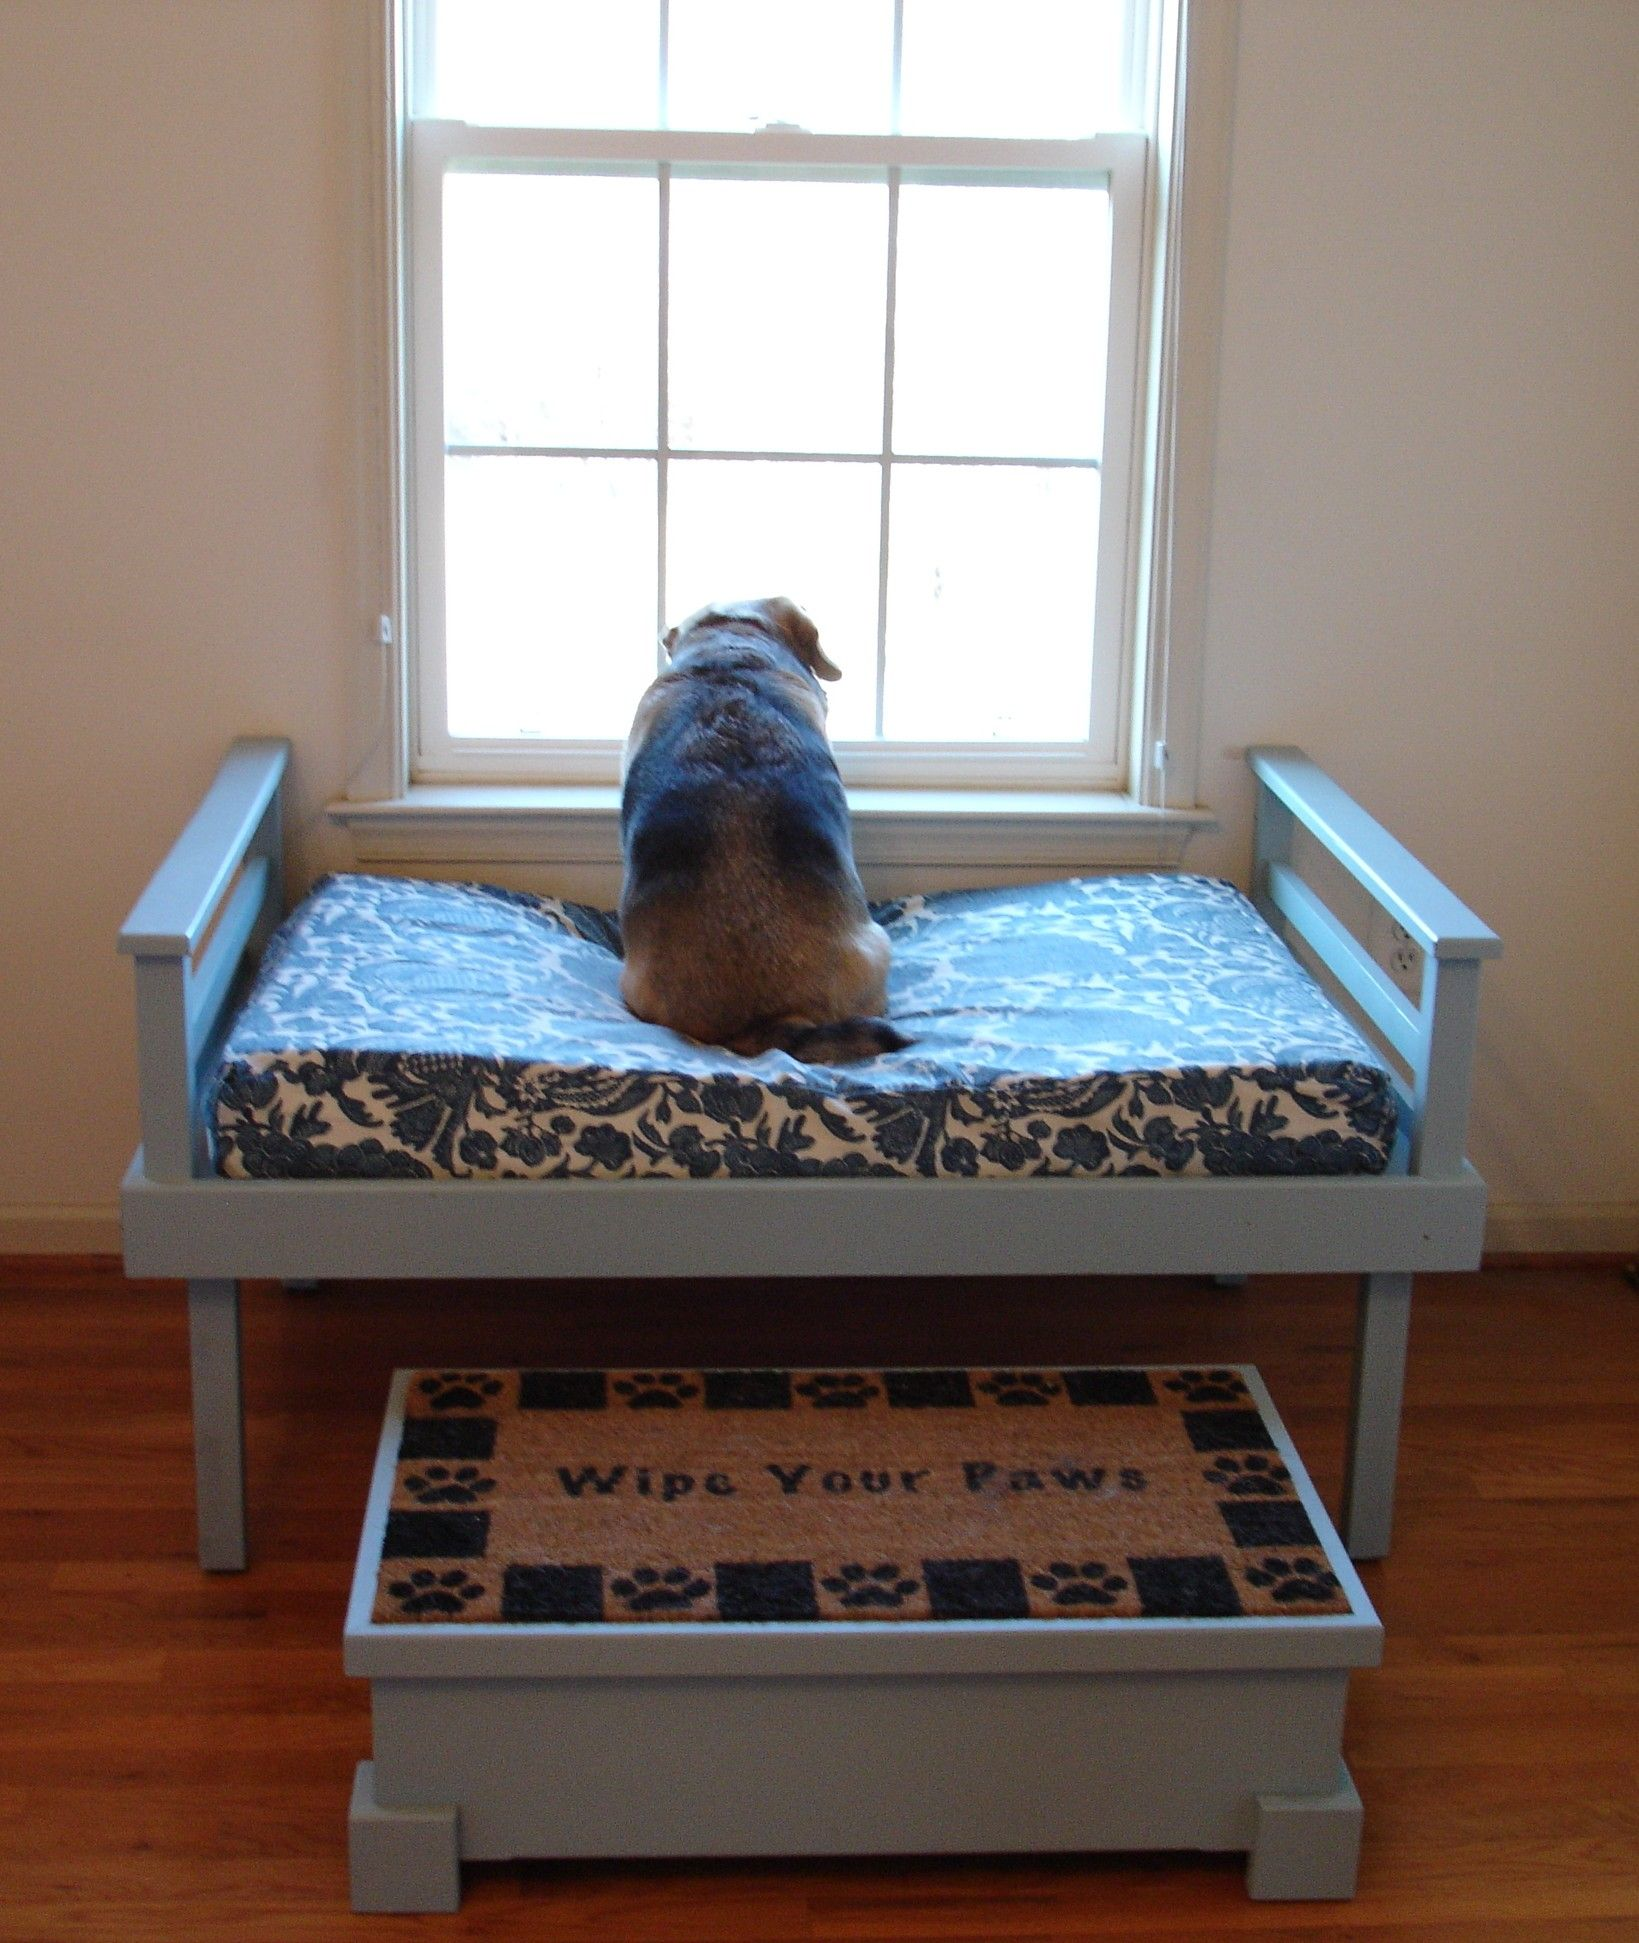 25 modern design ideas for pet beds that dogs and owners want animals diy dog bed pallet. Black Bedroom Furniture Sets. Home Design Ideas